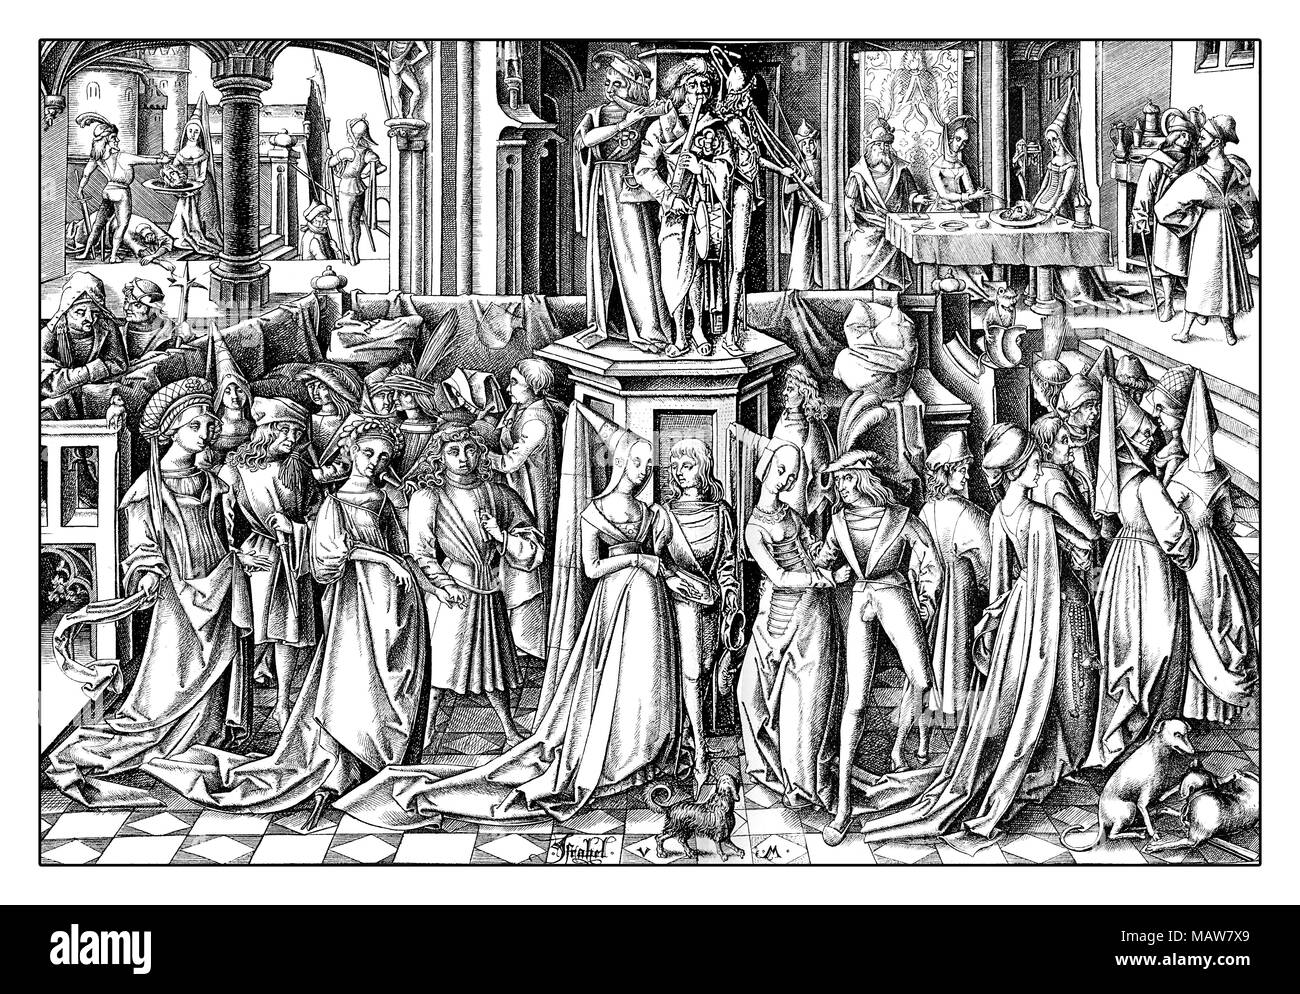 The Dance of the Daughters of Herodias, engraving by Israhel van Meckenem (1445 – 1503), year 1503 - Stock Image